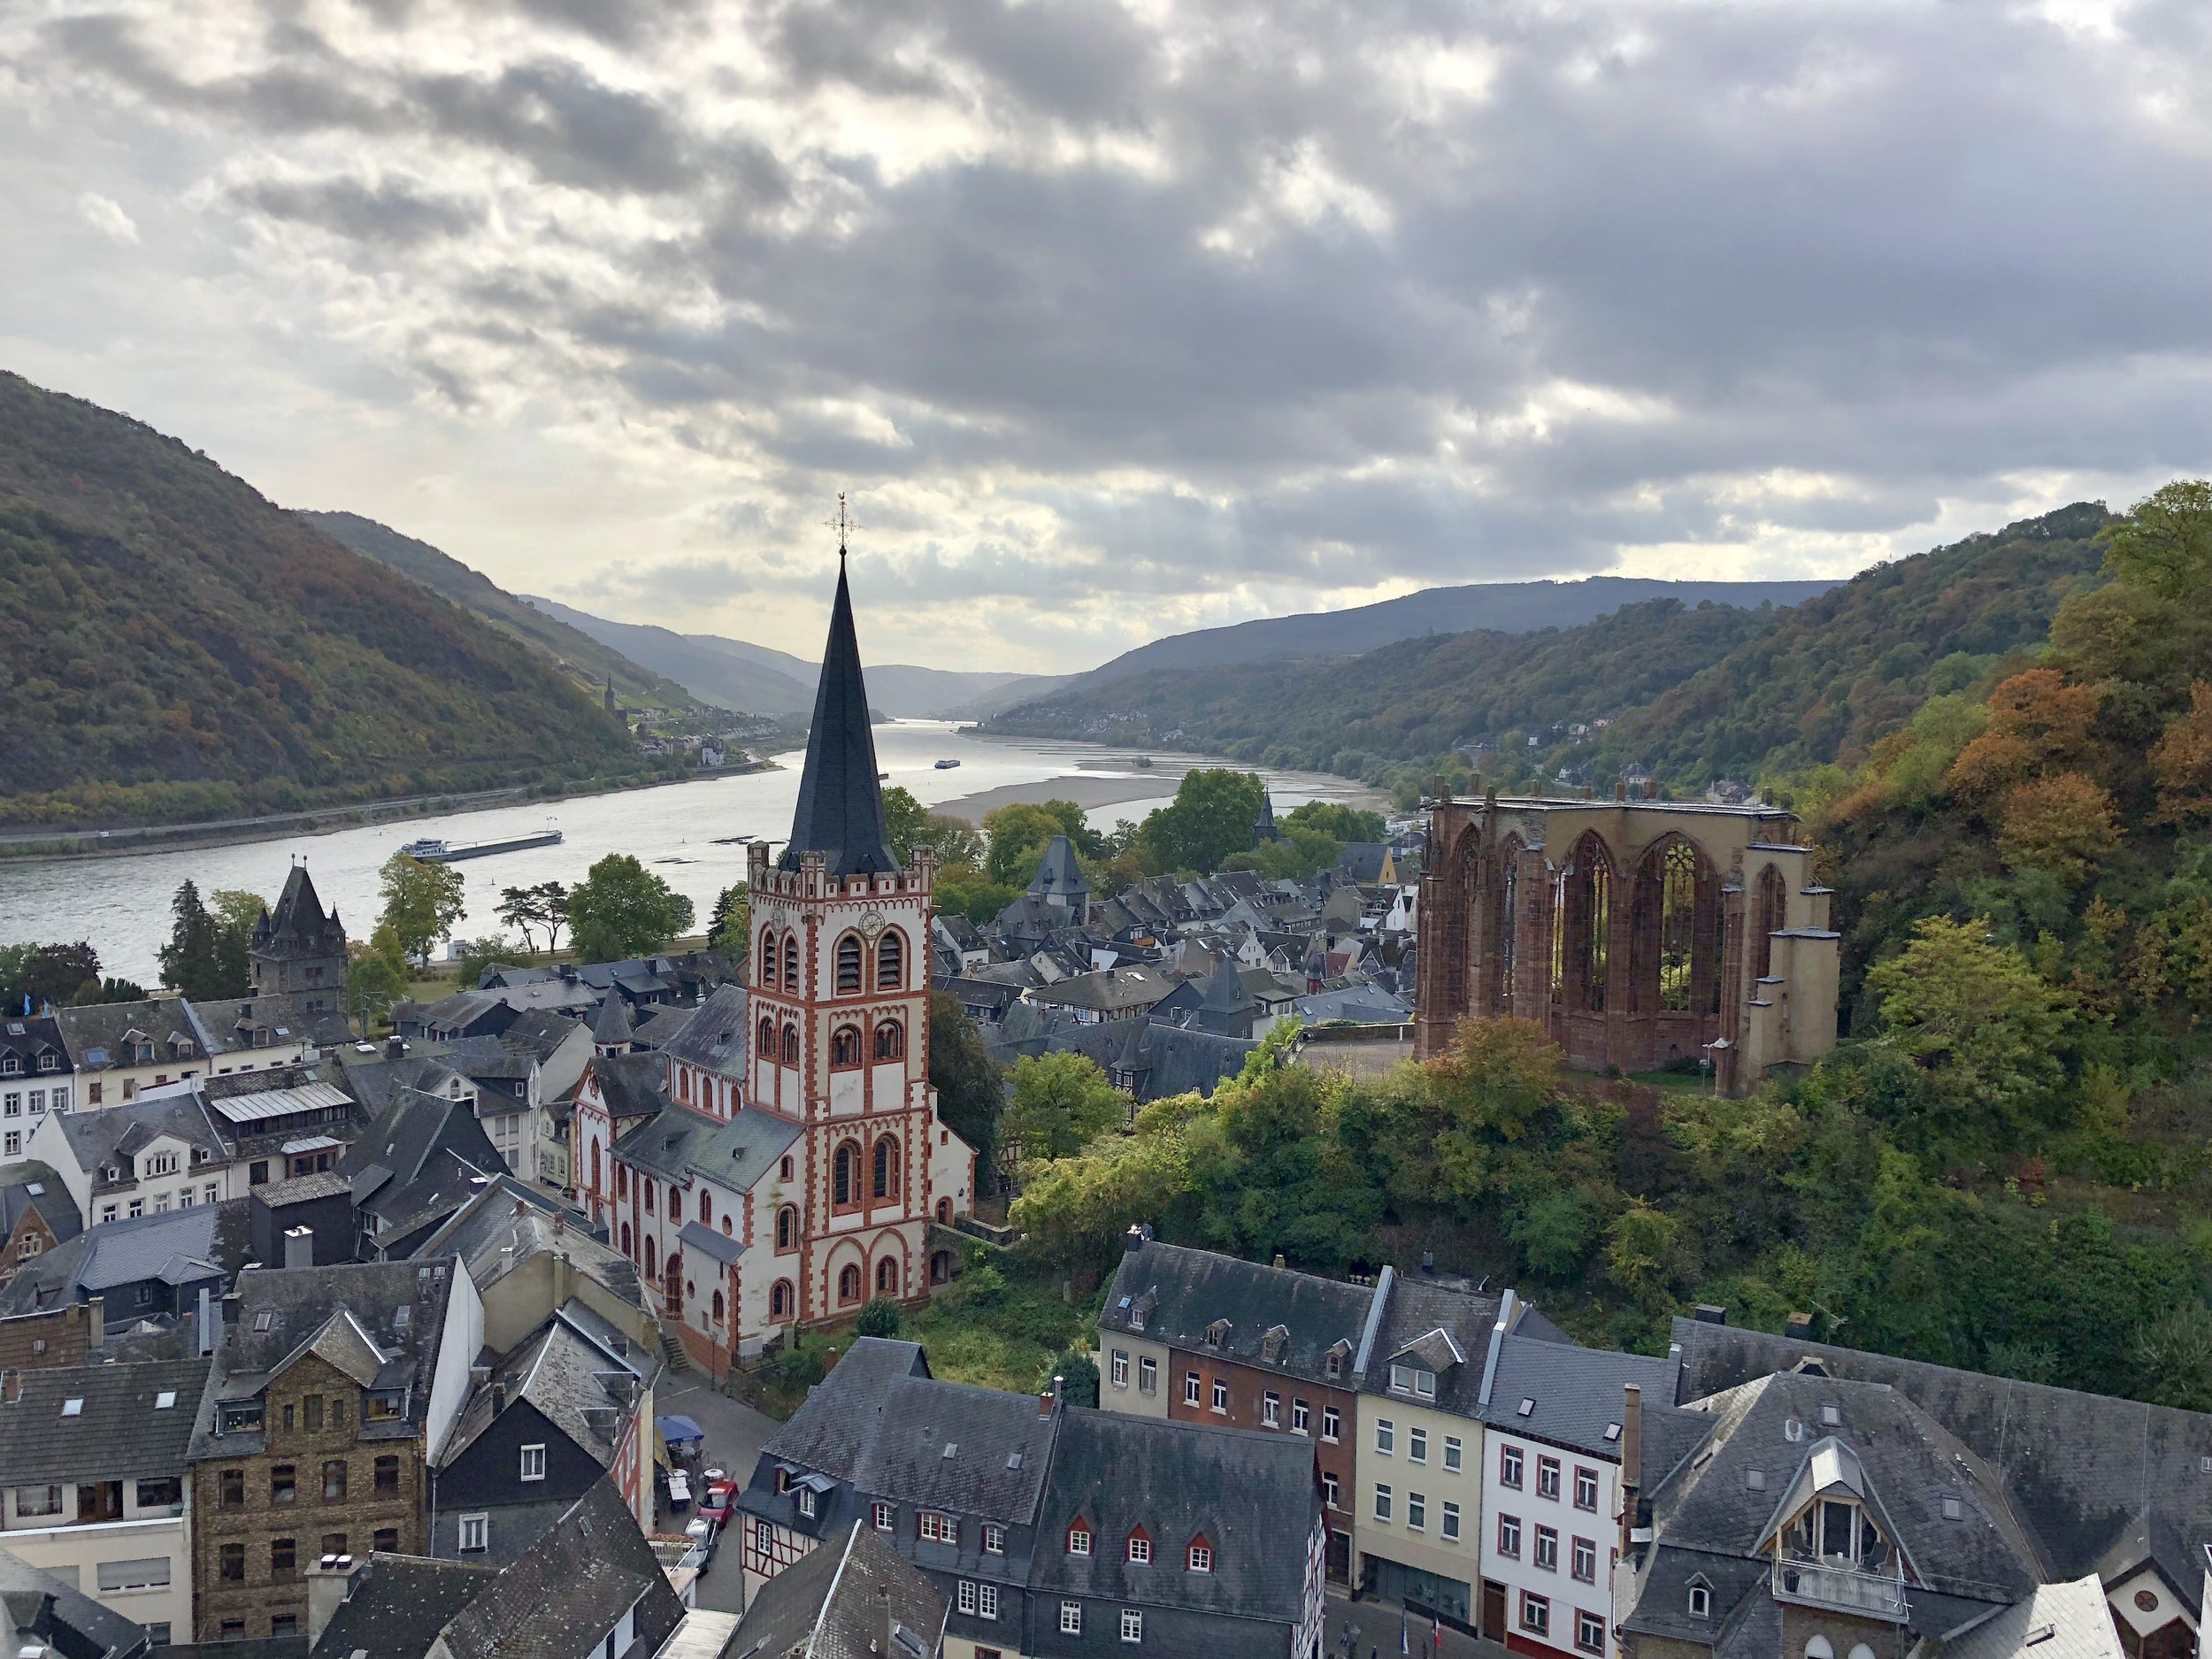 Bacharach, Germany, 2018